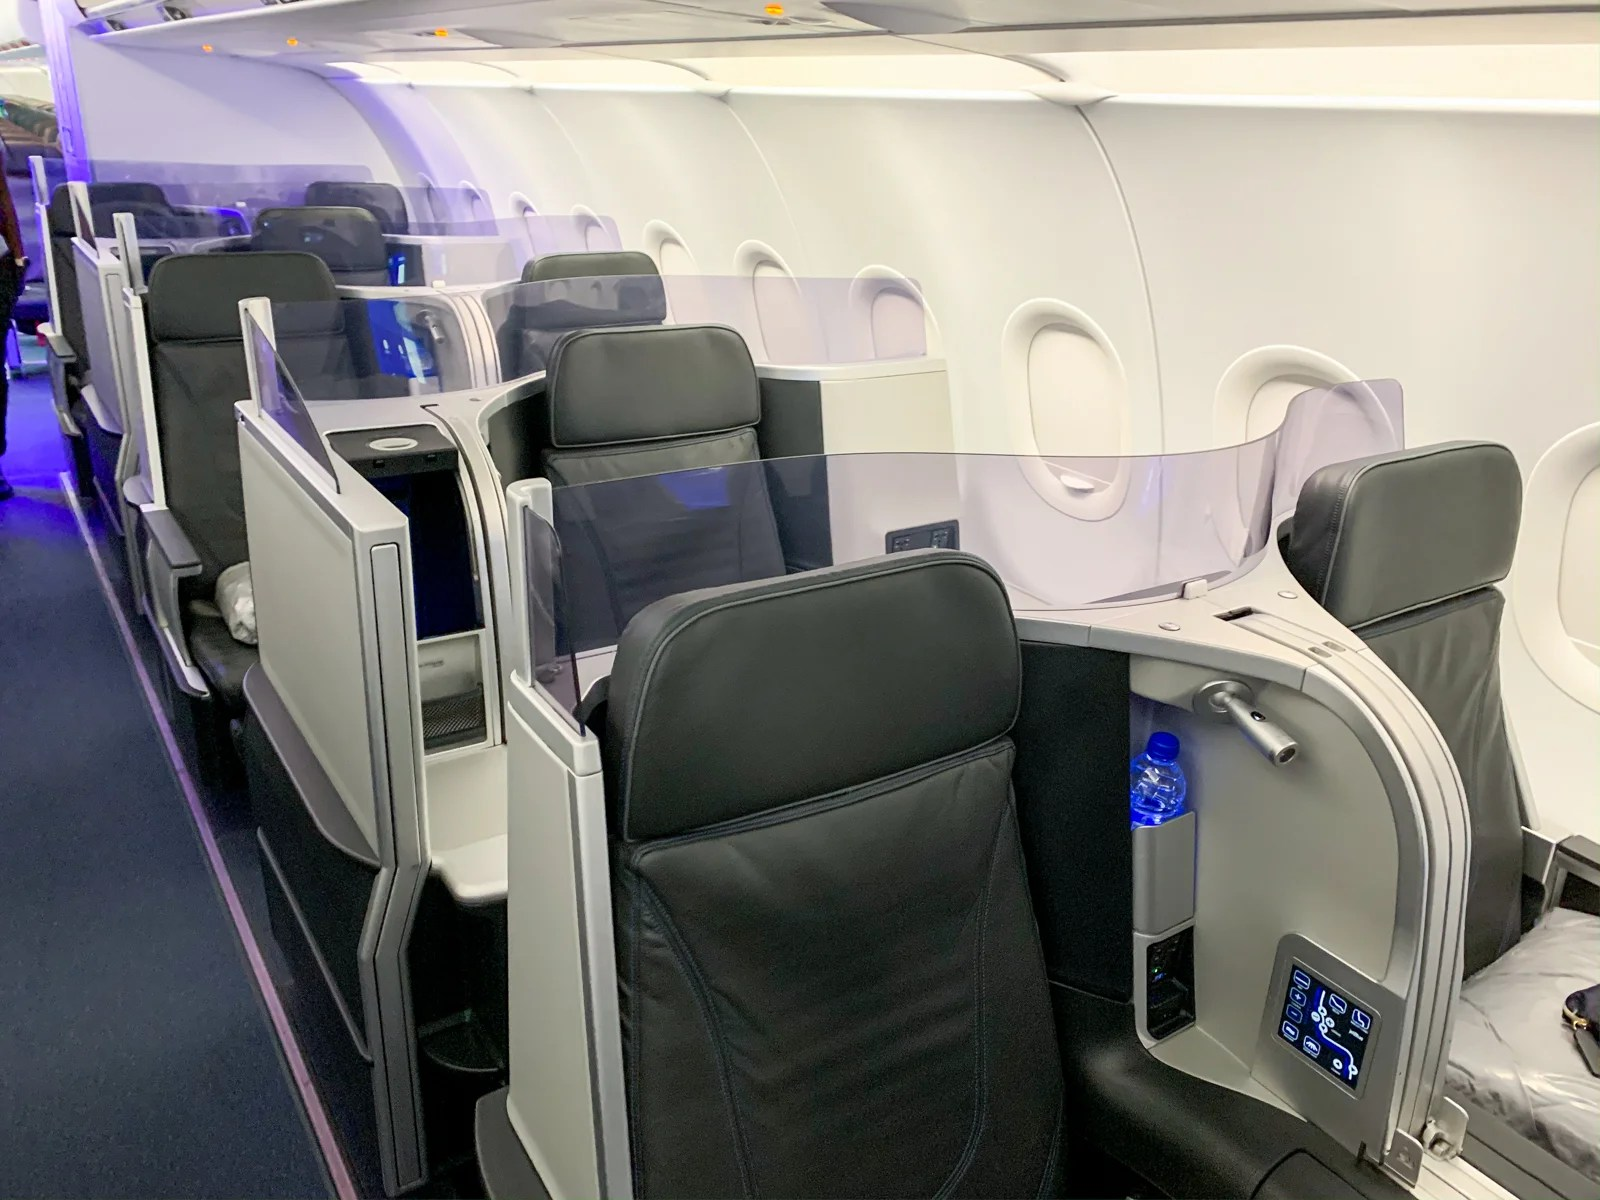 Still in mint condition: A review of JetBlue's Mint business class